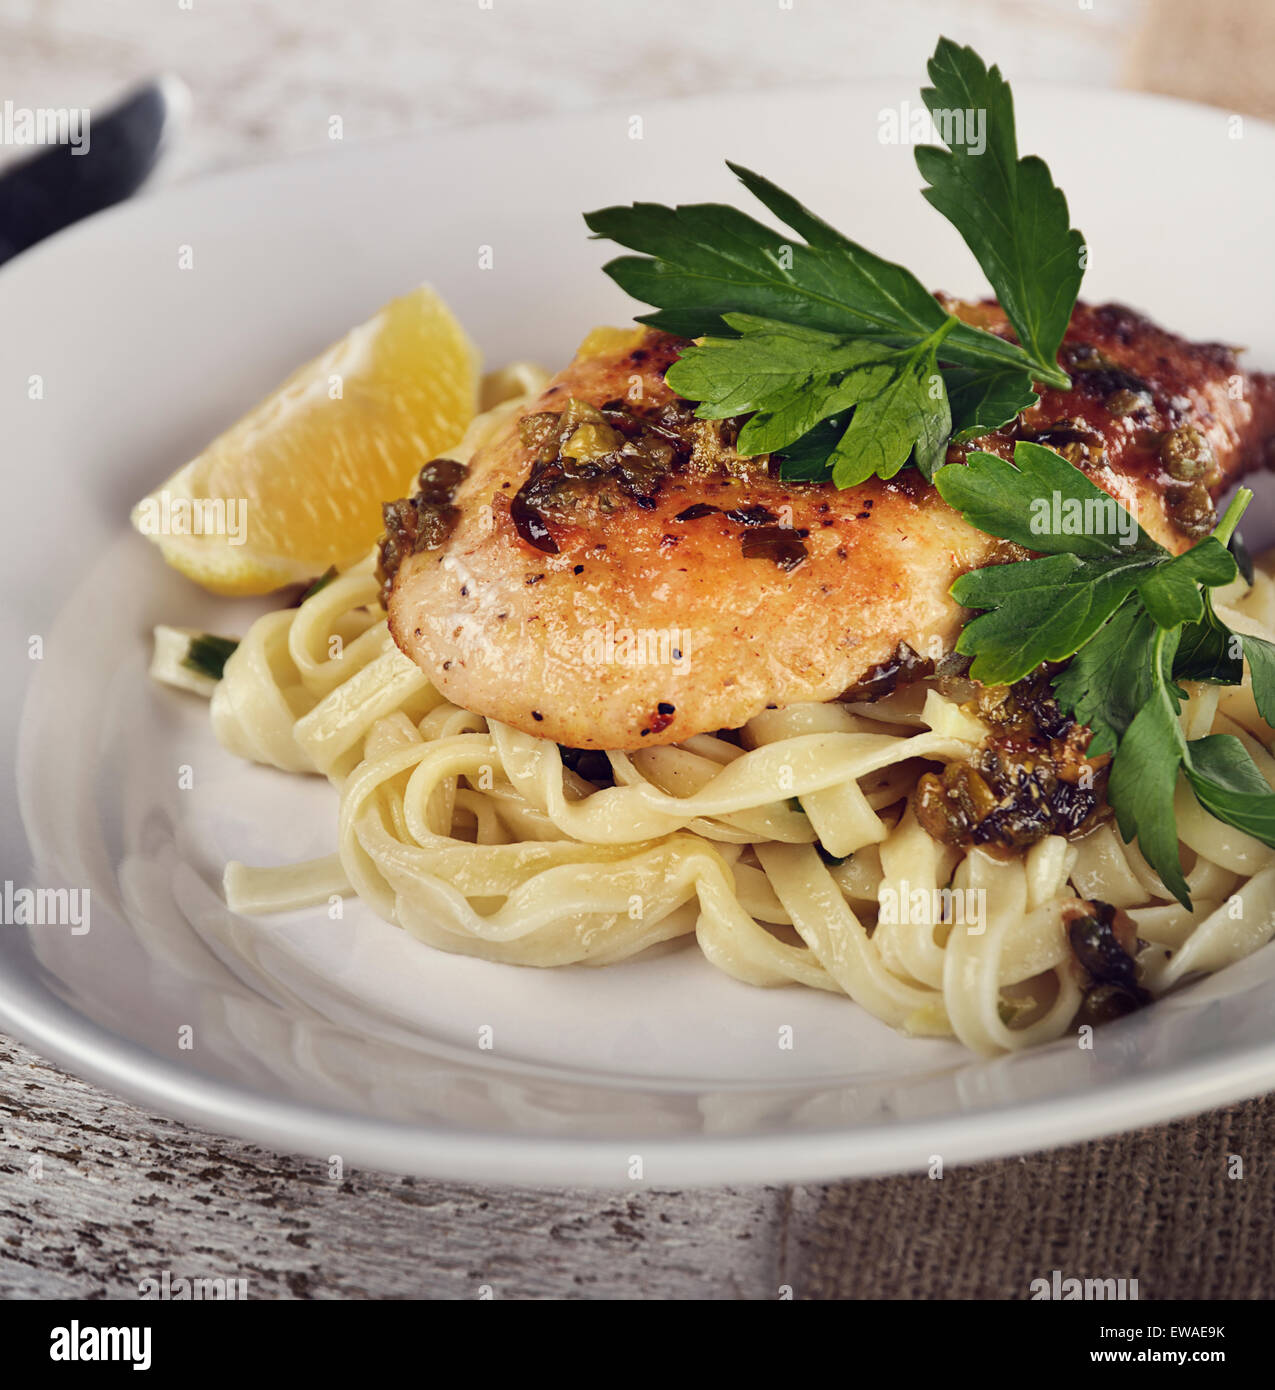 Chicken Fillet With Pasta,Parmesan Cheese And Capers - Stock Image